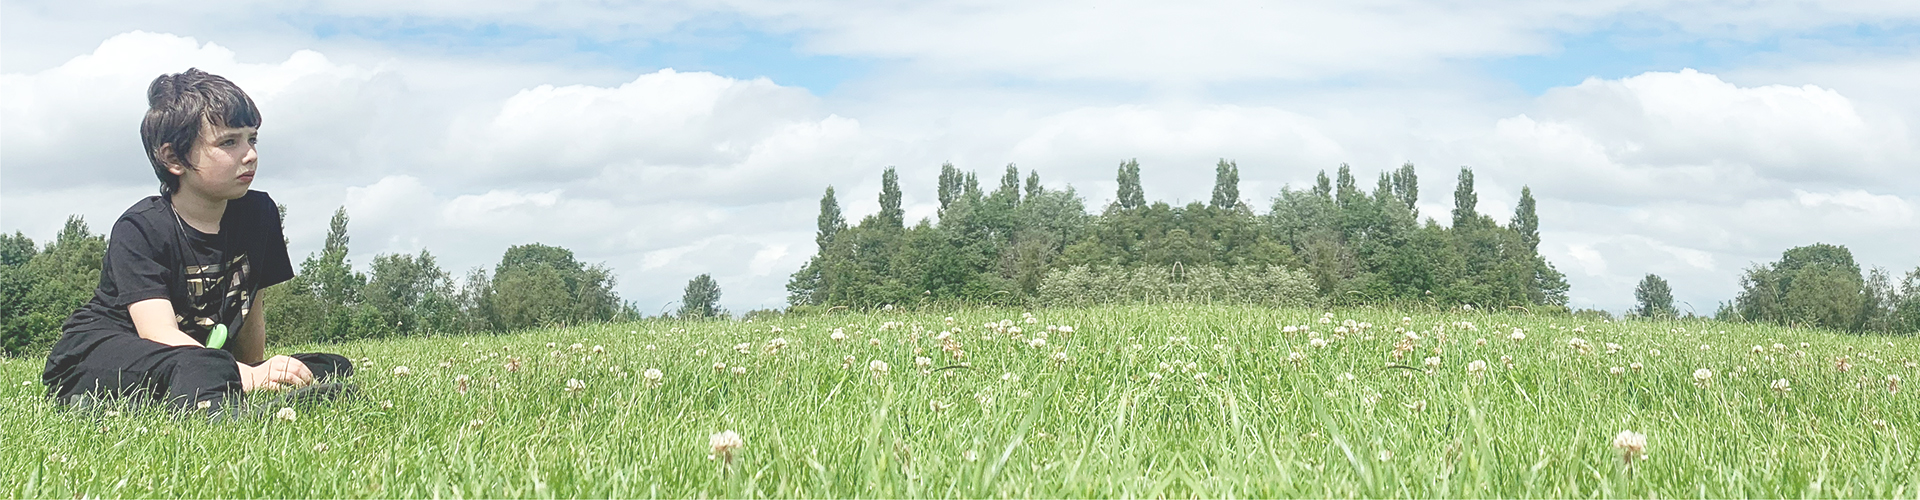 Sam sat on a field, staring out at the sky